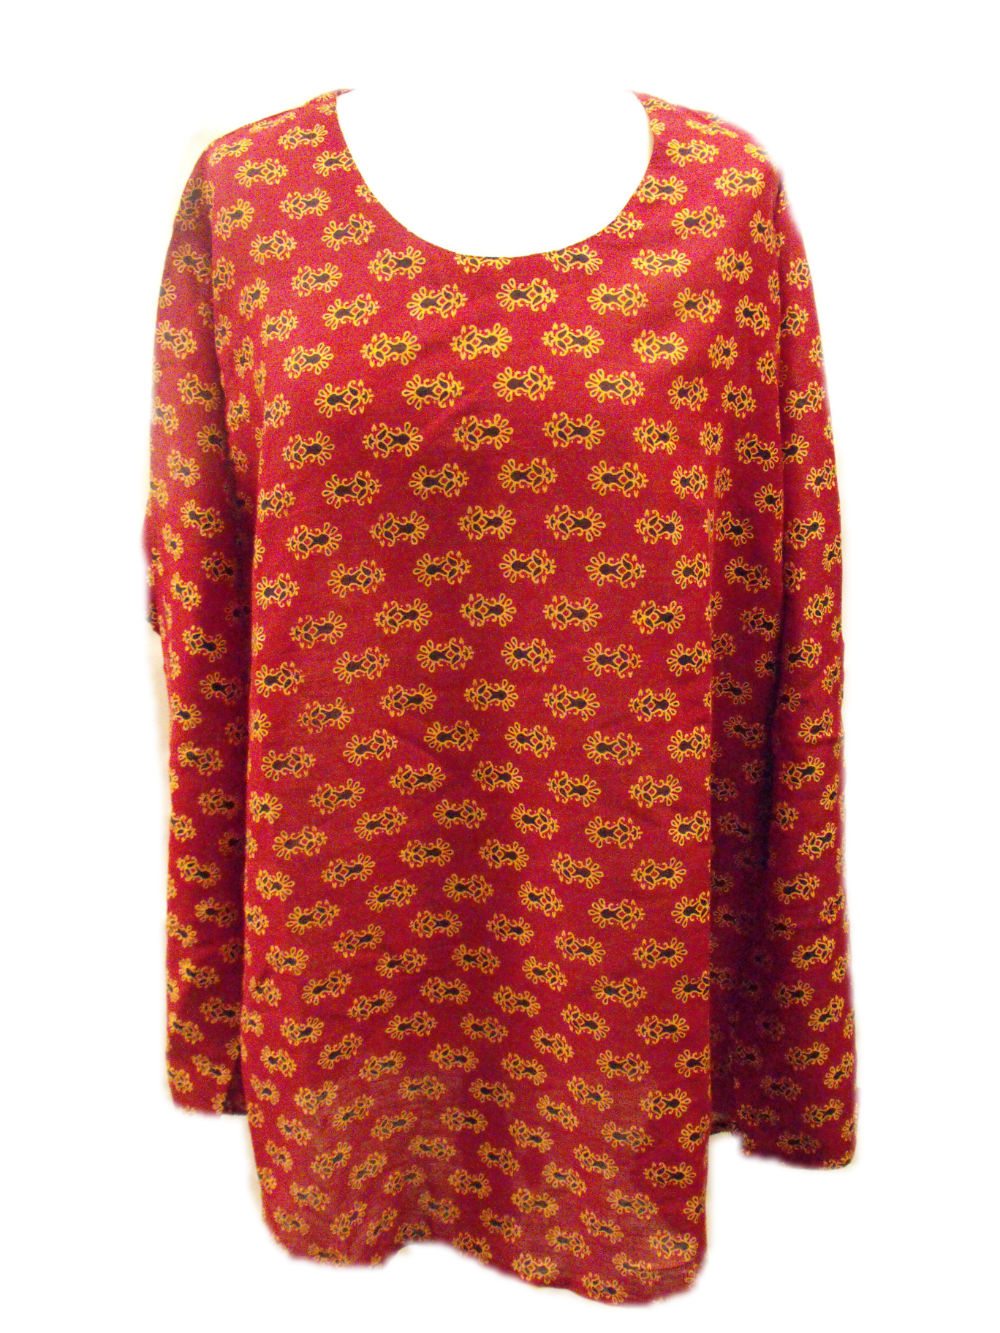 29202c1017df8 Baggy Maroon Pretty Blockprint Cotton Maternity Blouse - Fair Trade